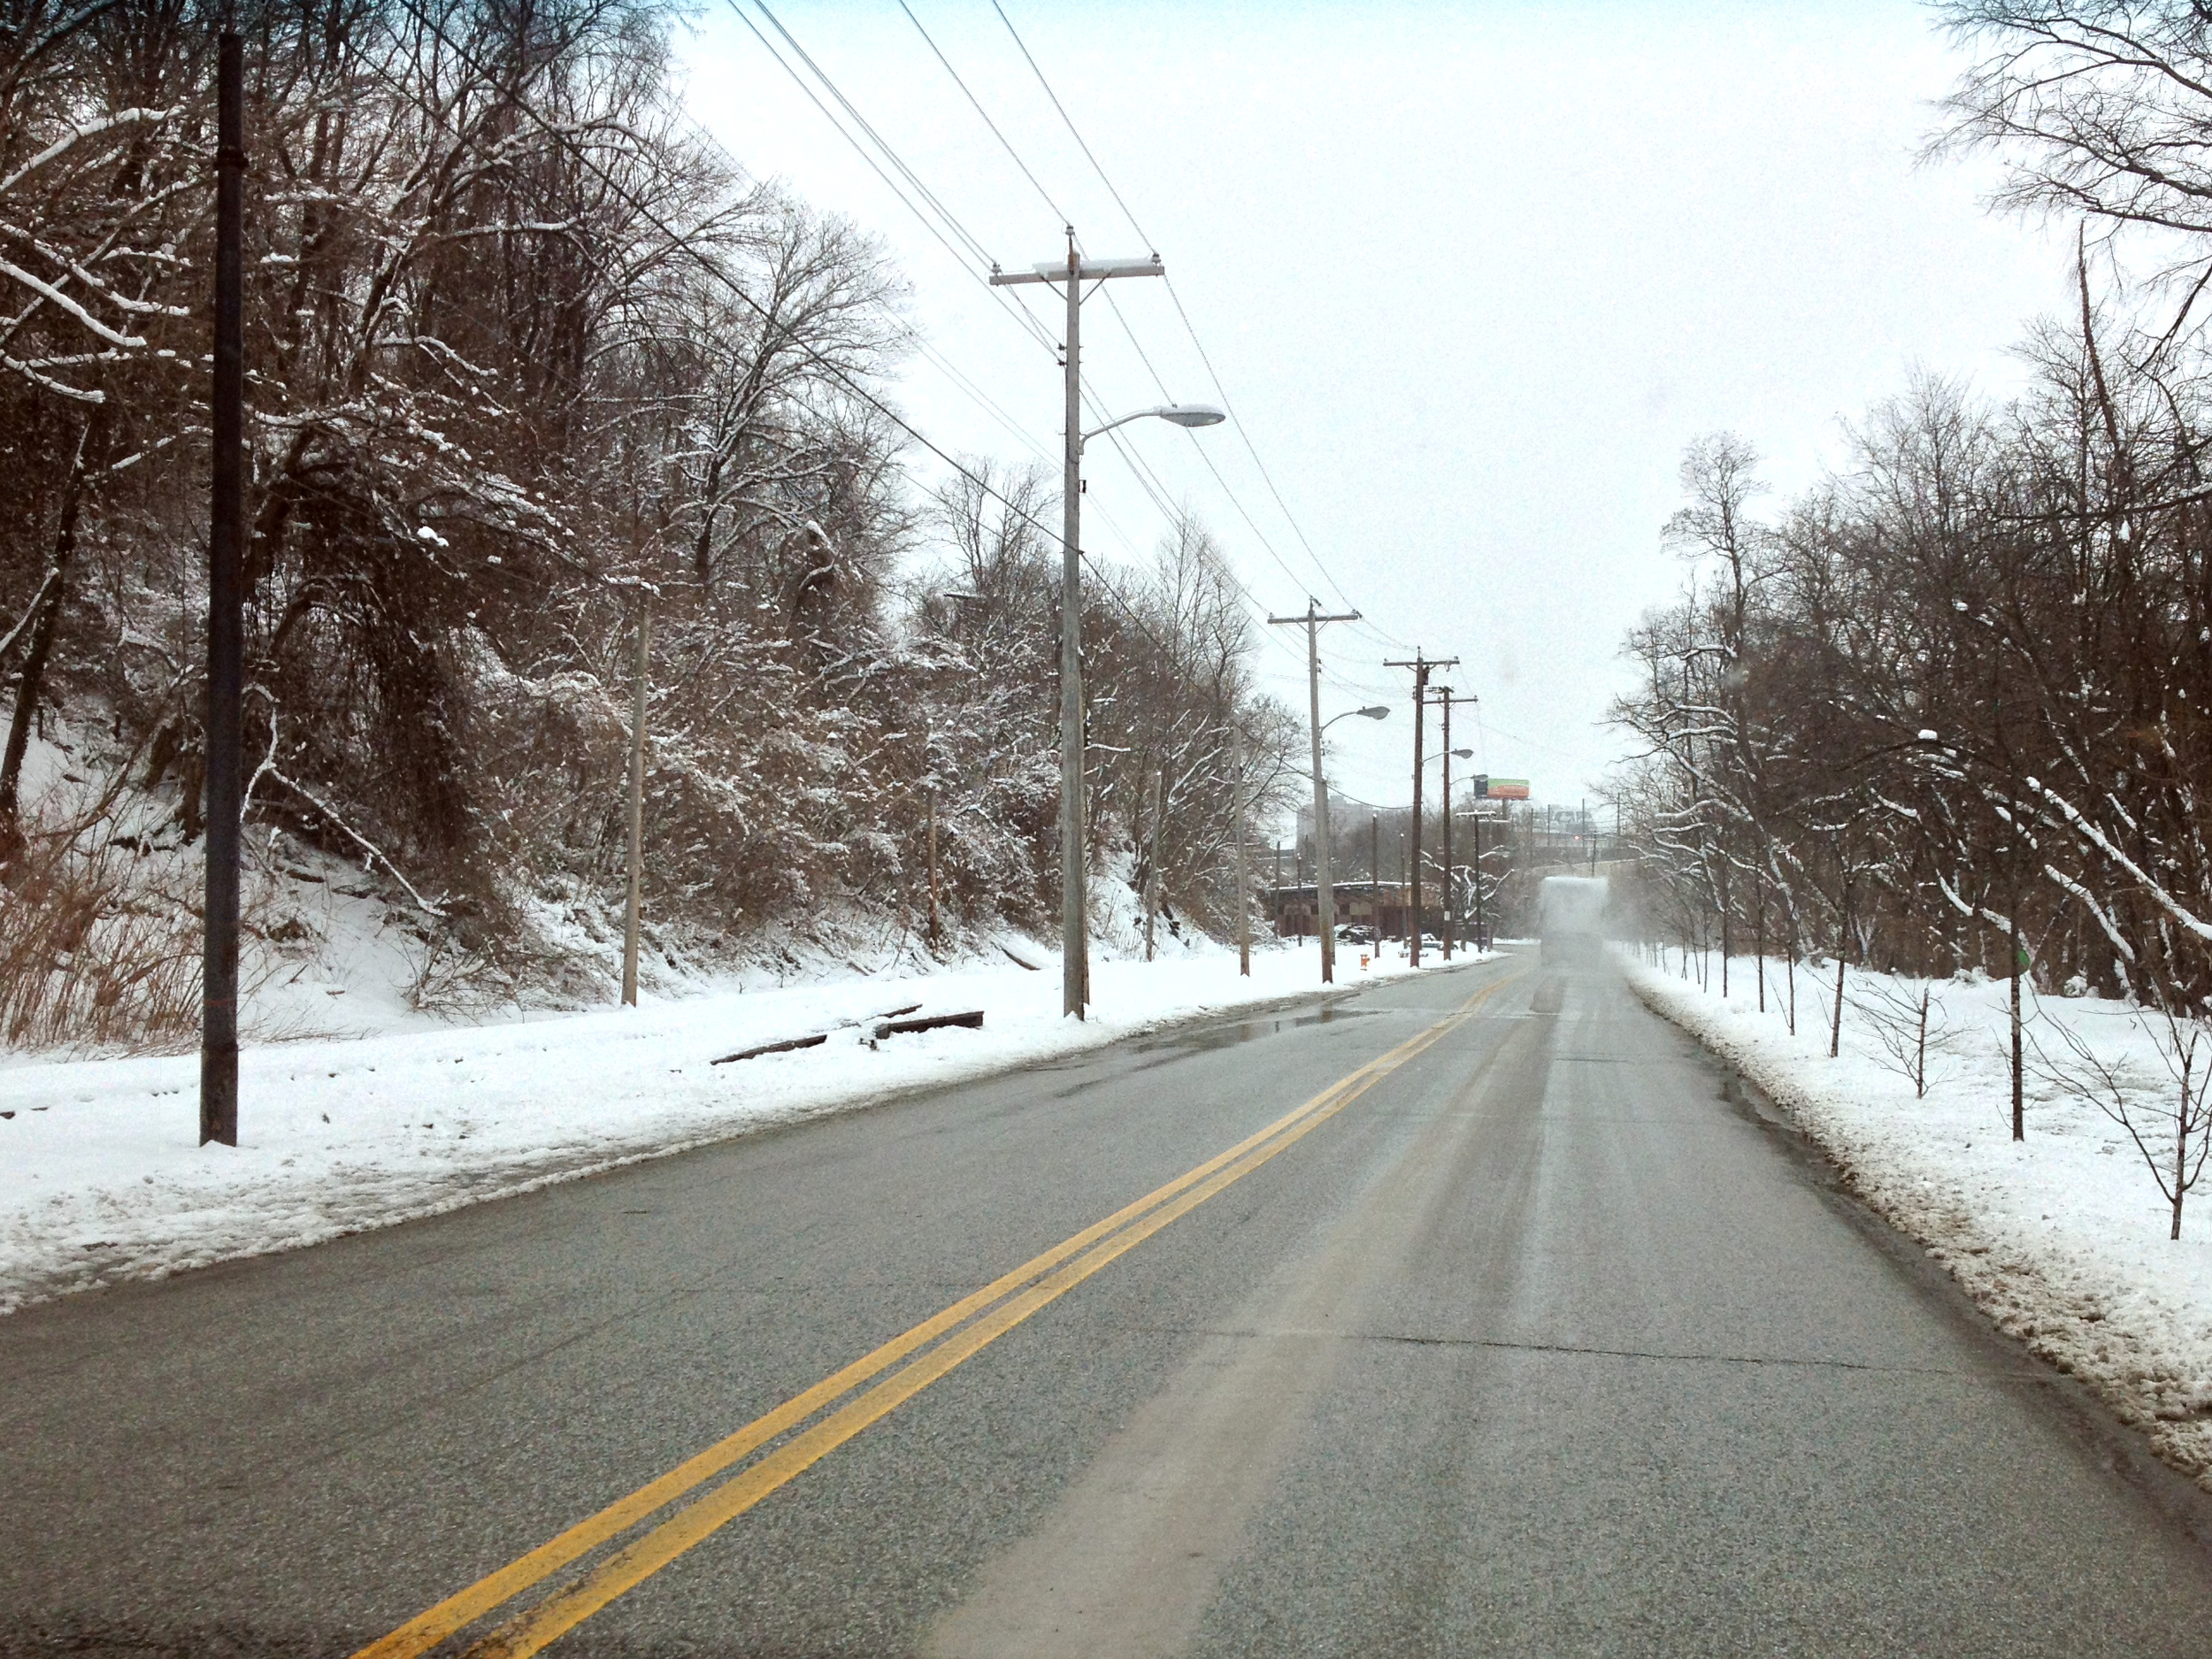 . . . over snowy roads . . .